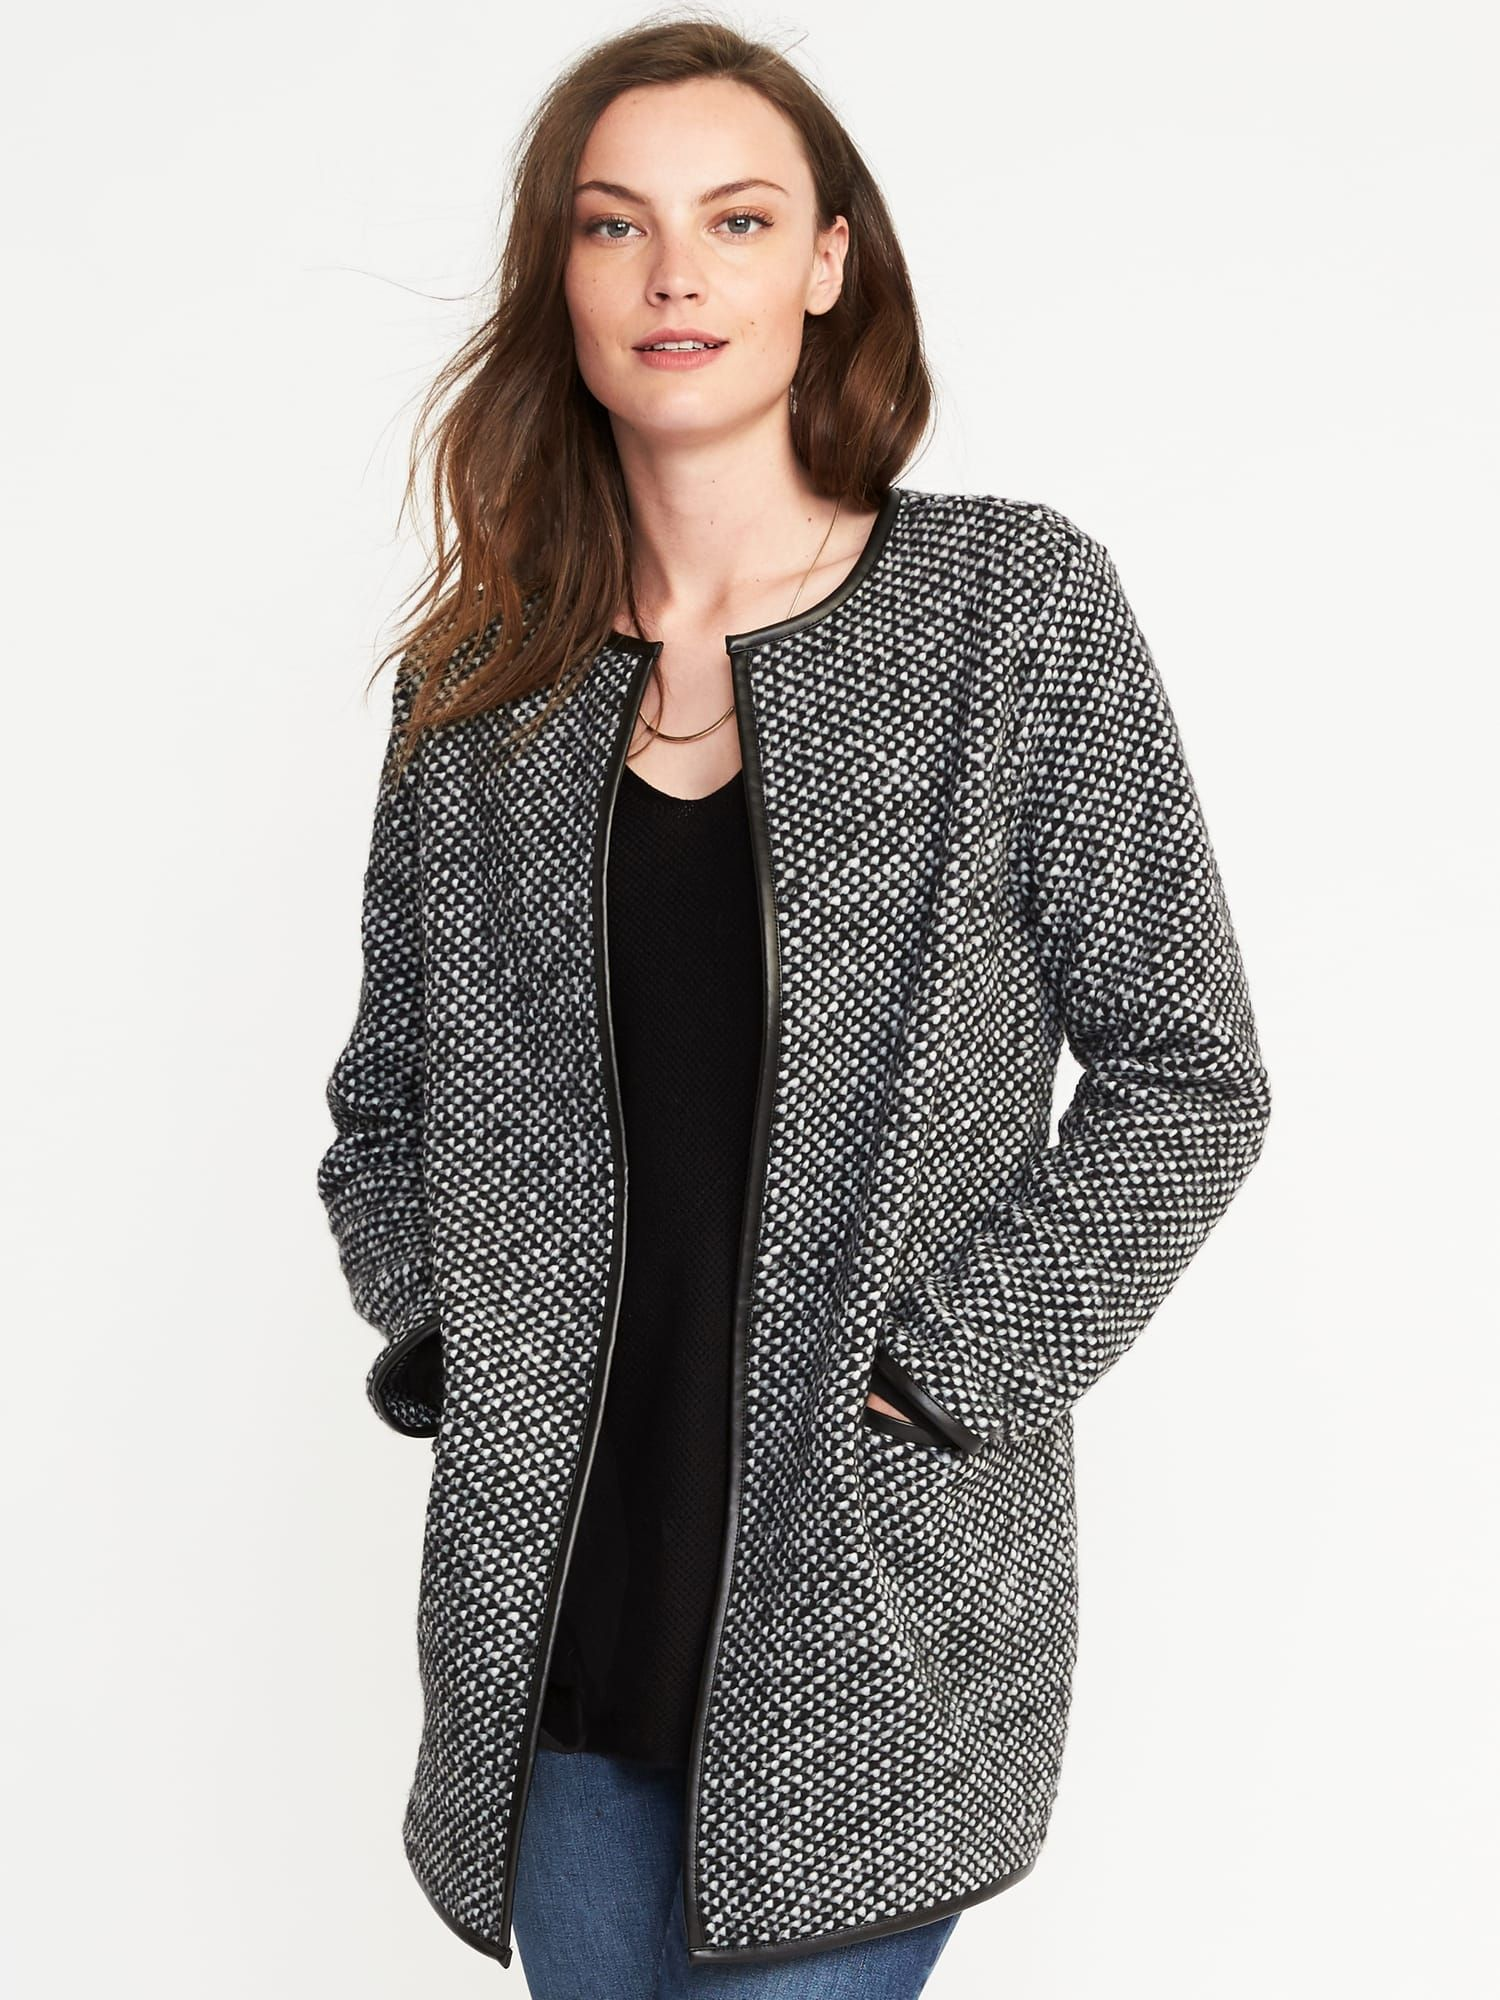 Textured Jacquard Cardi Coat For Women Old Navy Old